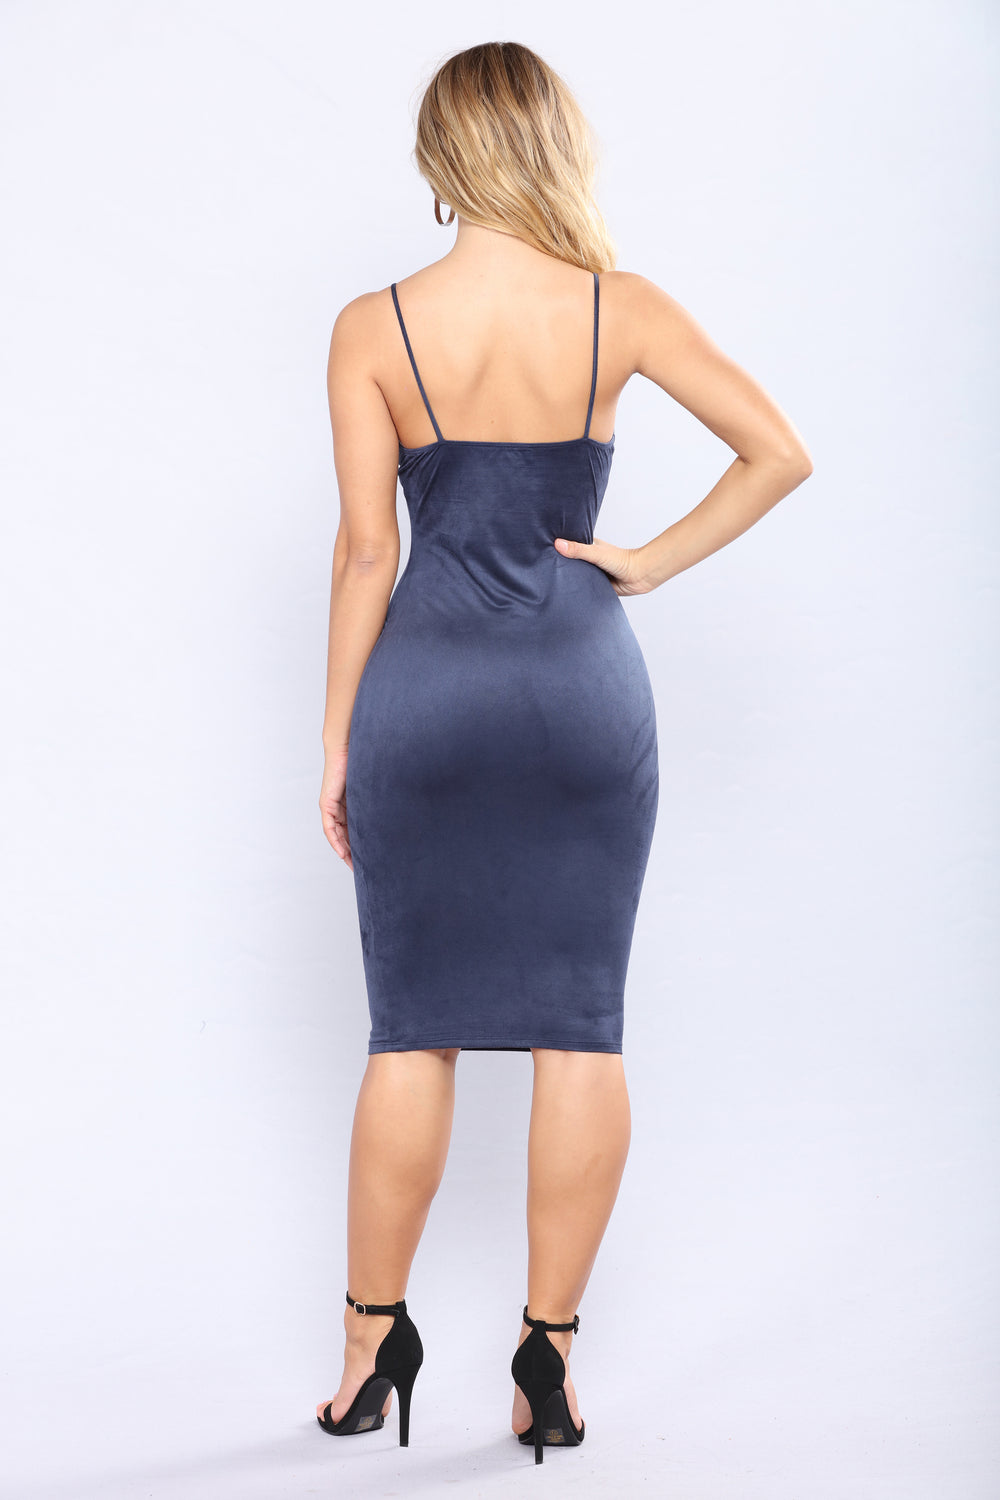 Iman Suede Dress - Navy